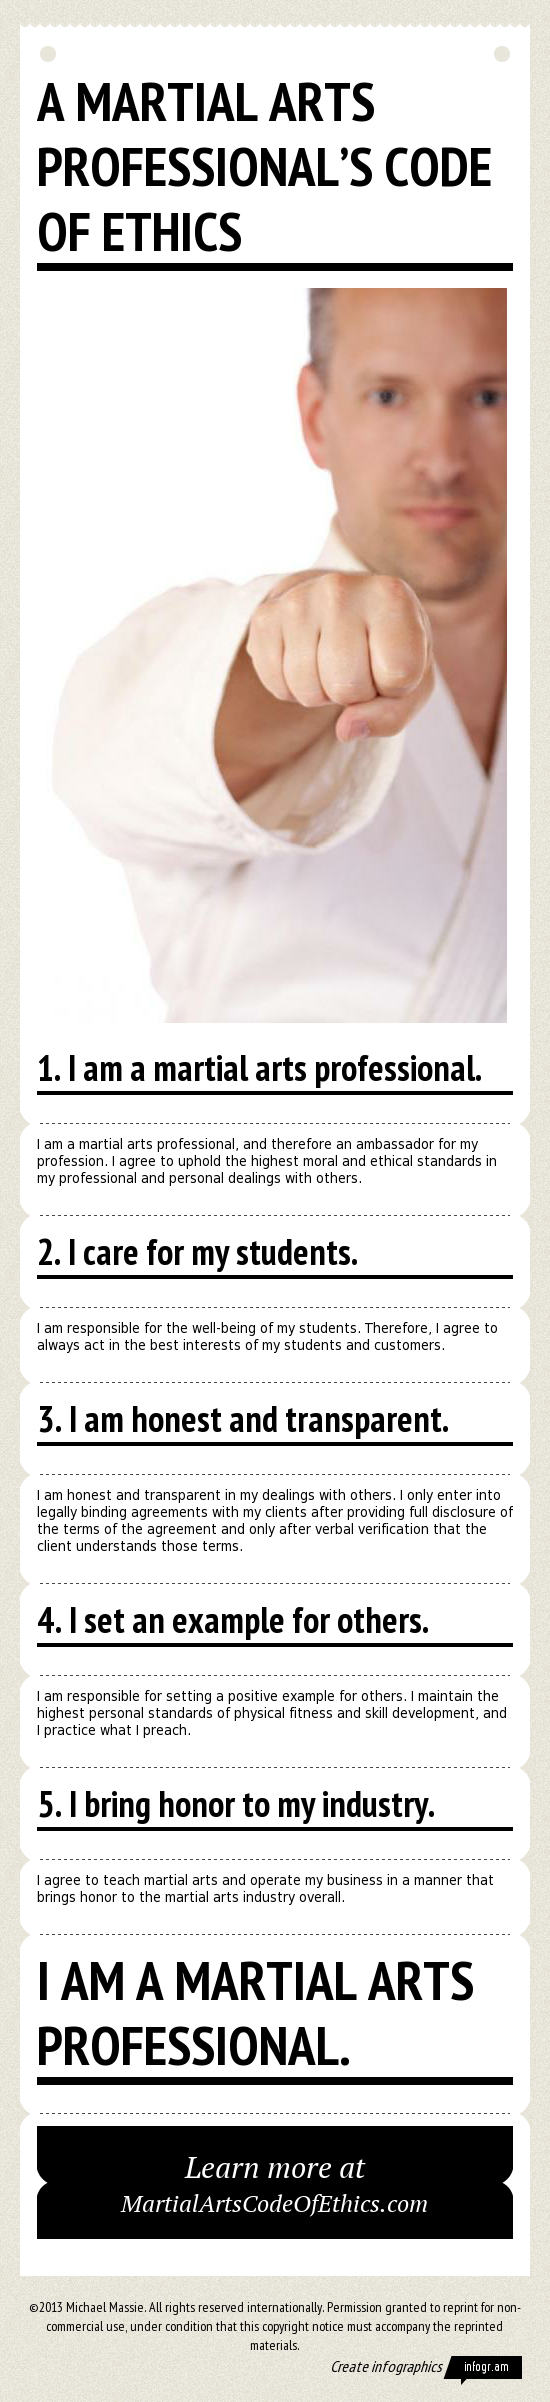 Martial Arts Professional's Code of Ethics